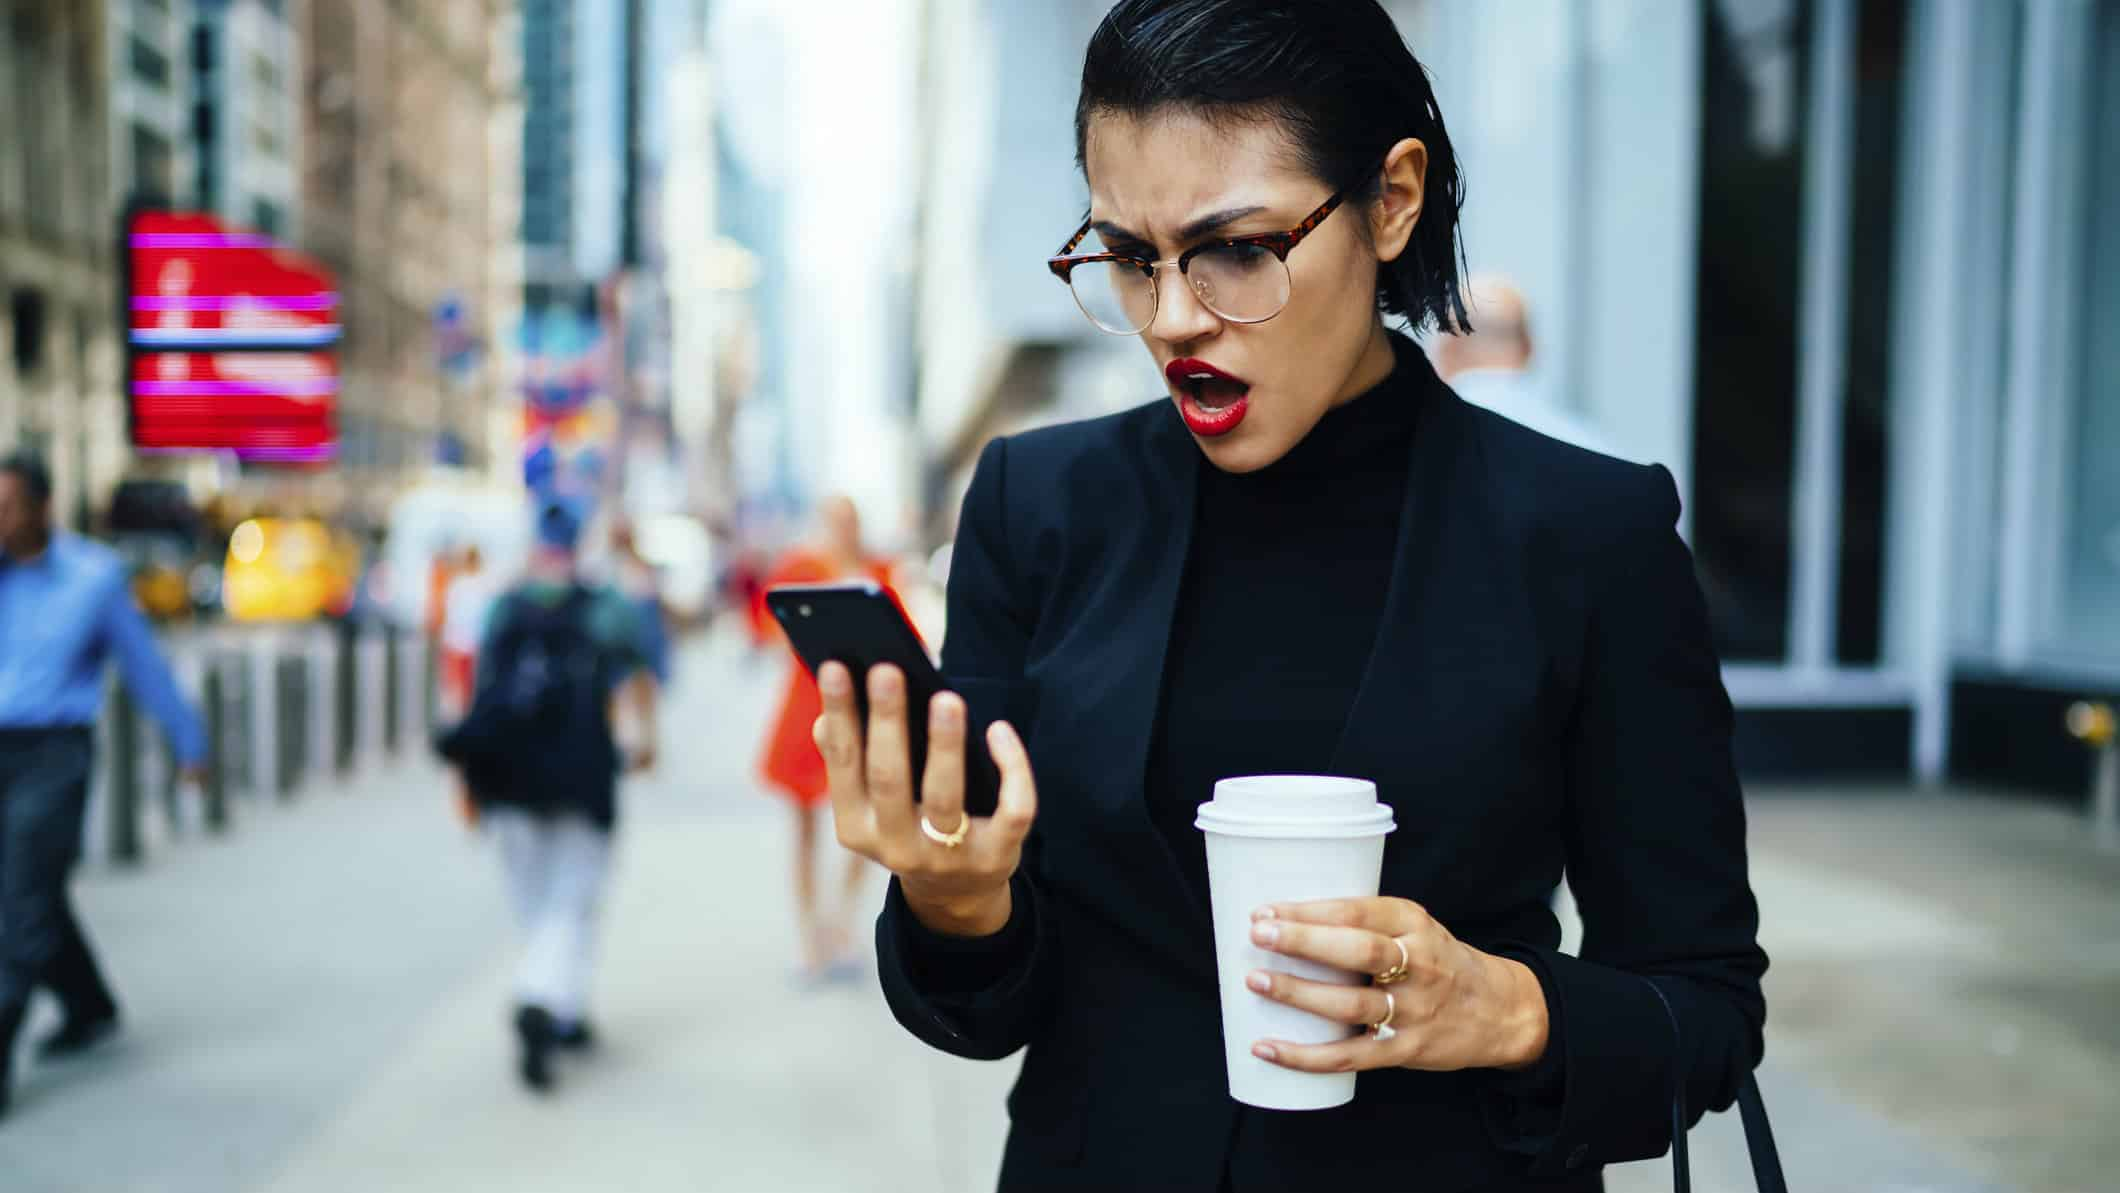 Falling ASX share price represented by shocked Investor looking at phone